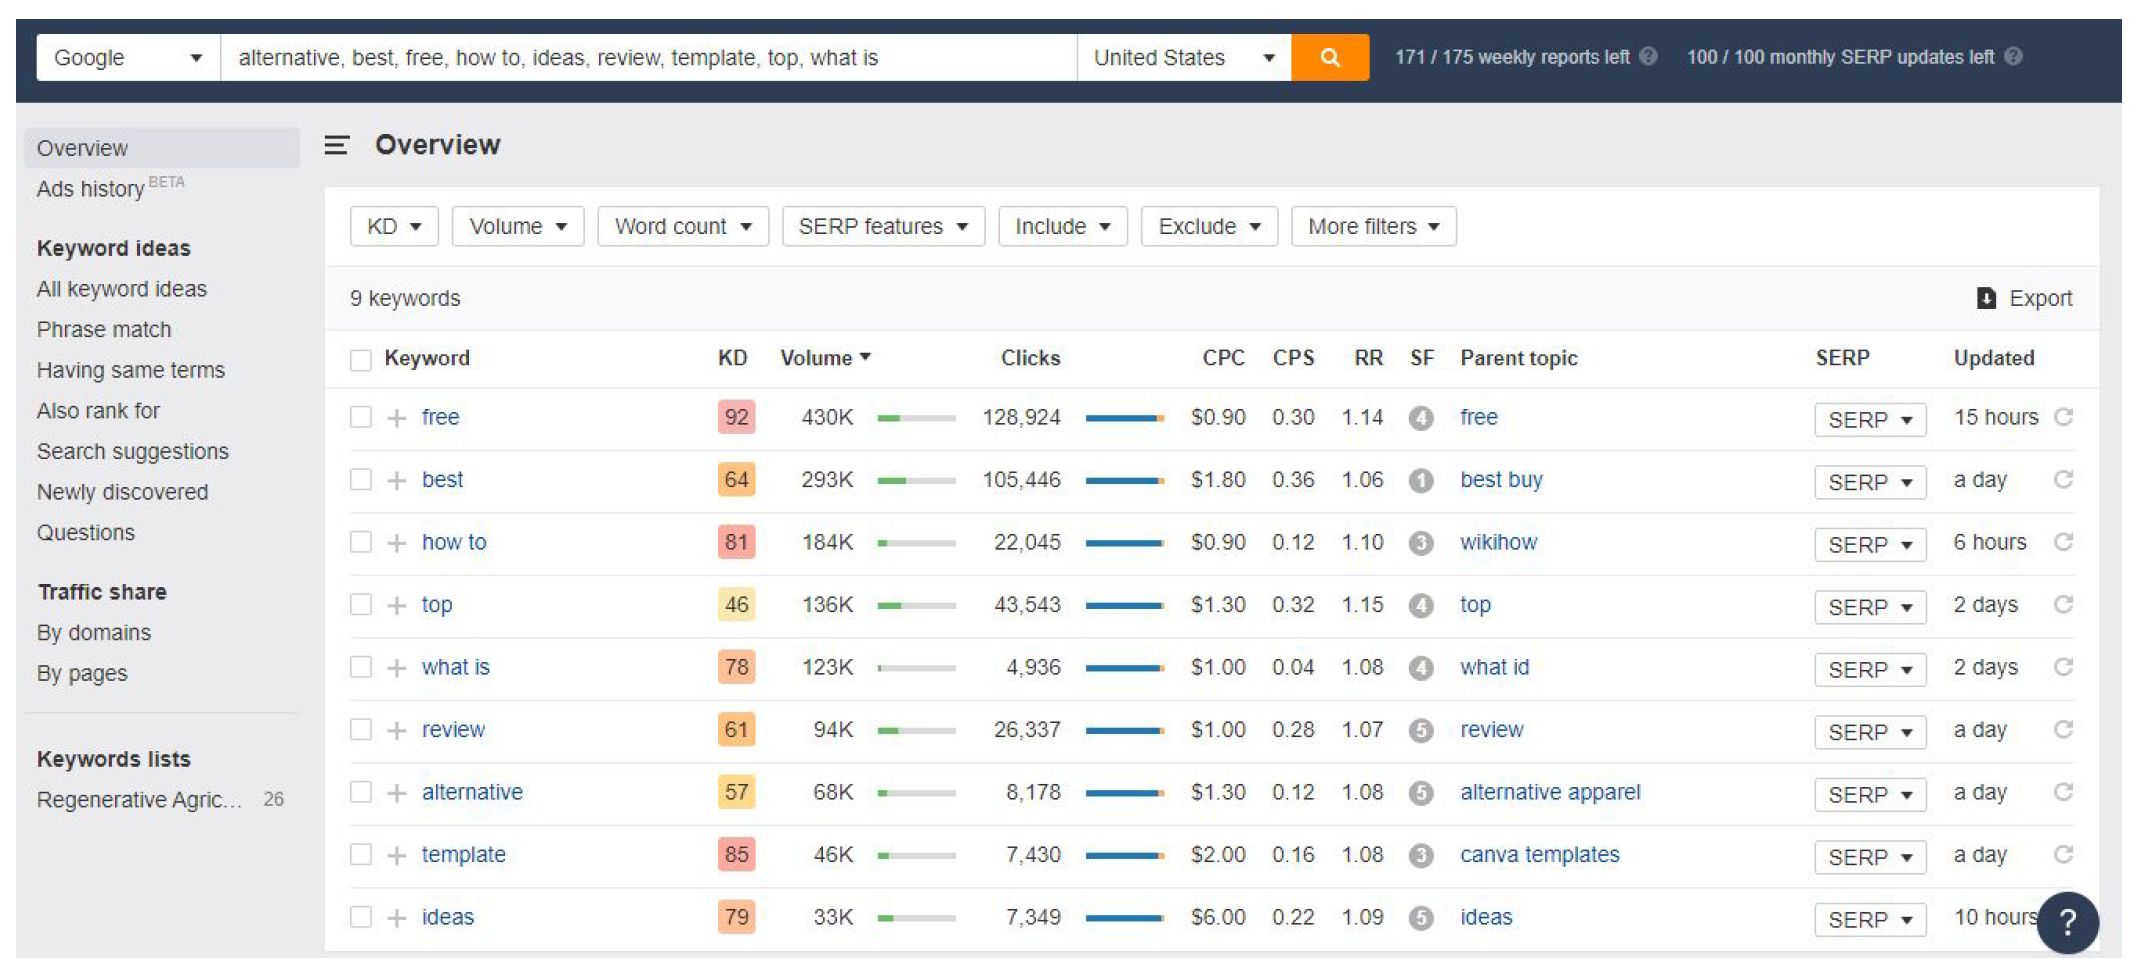 Full overview of all your keywords' statistics